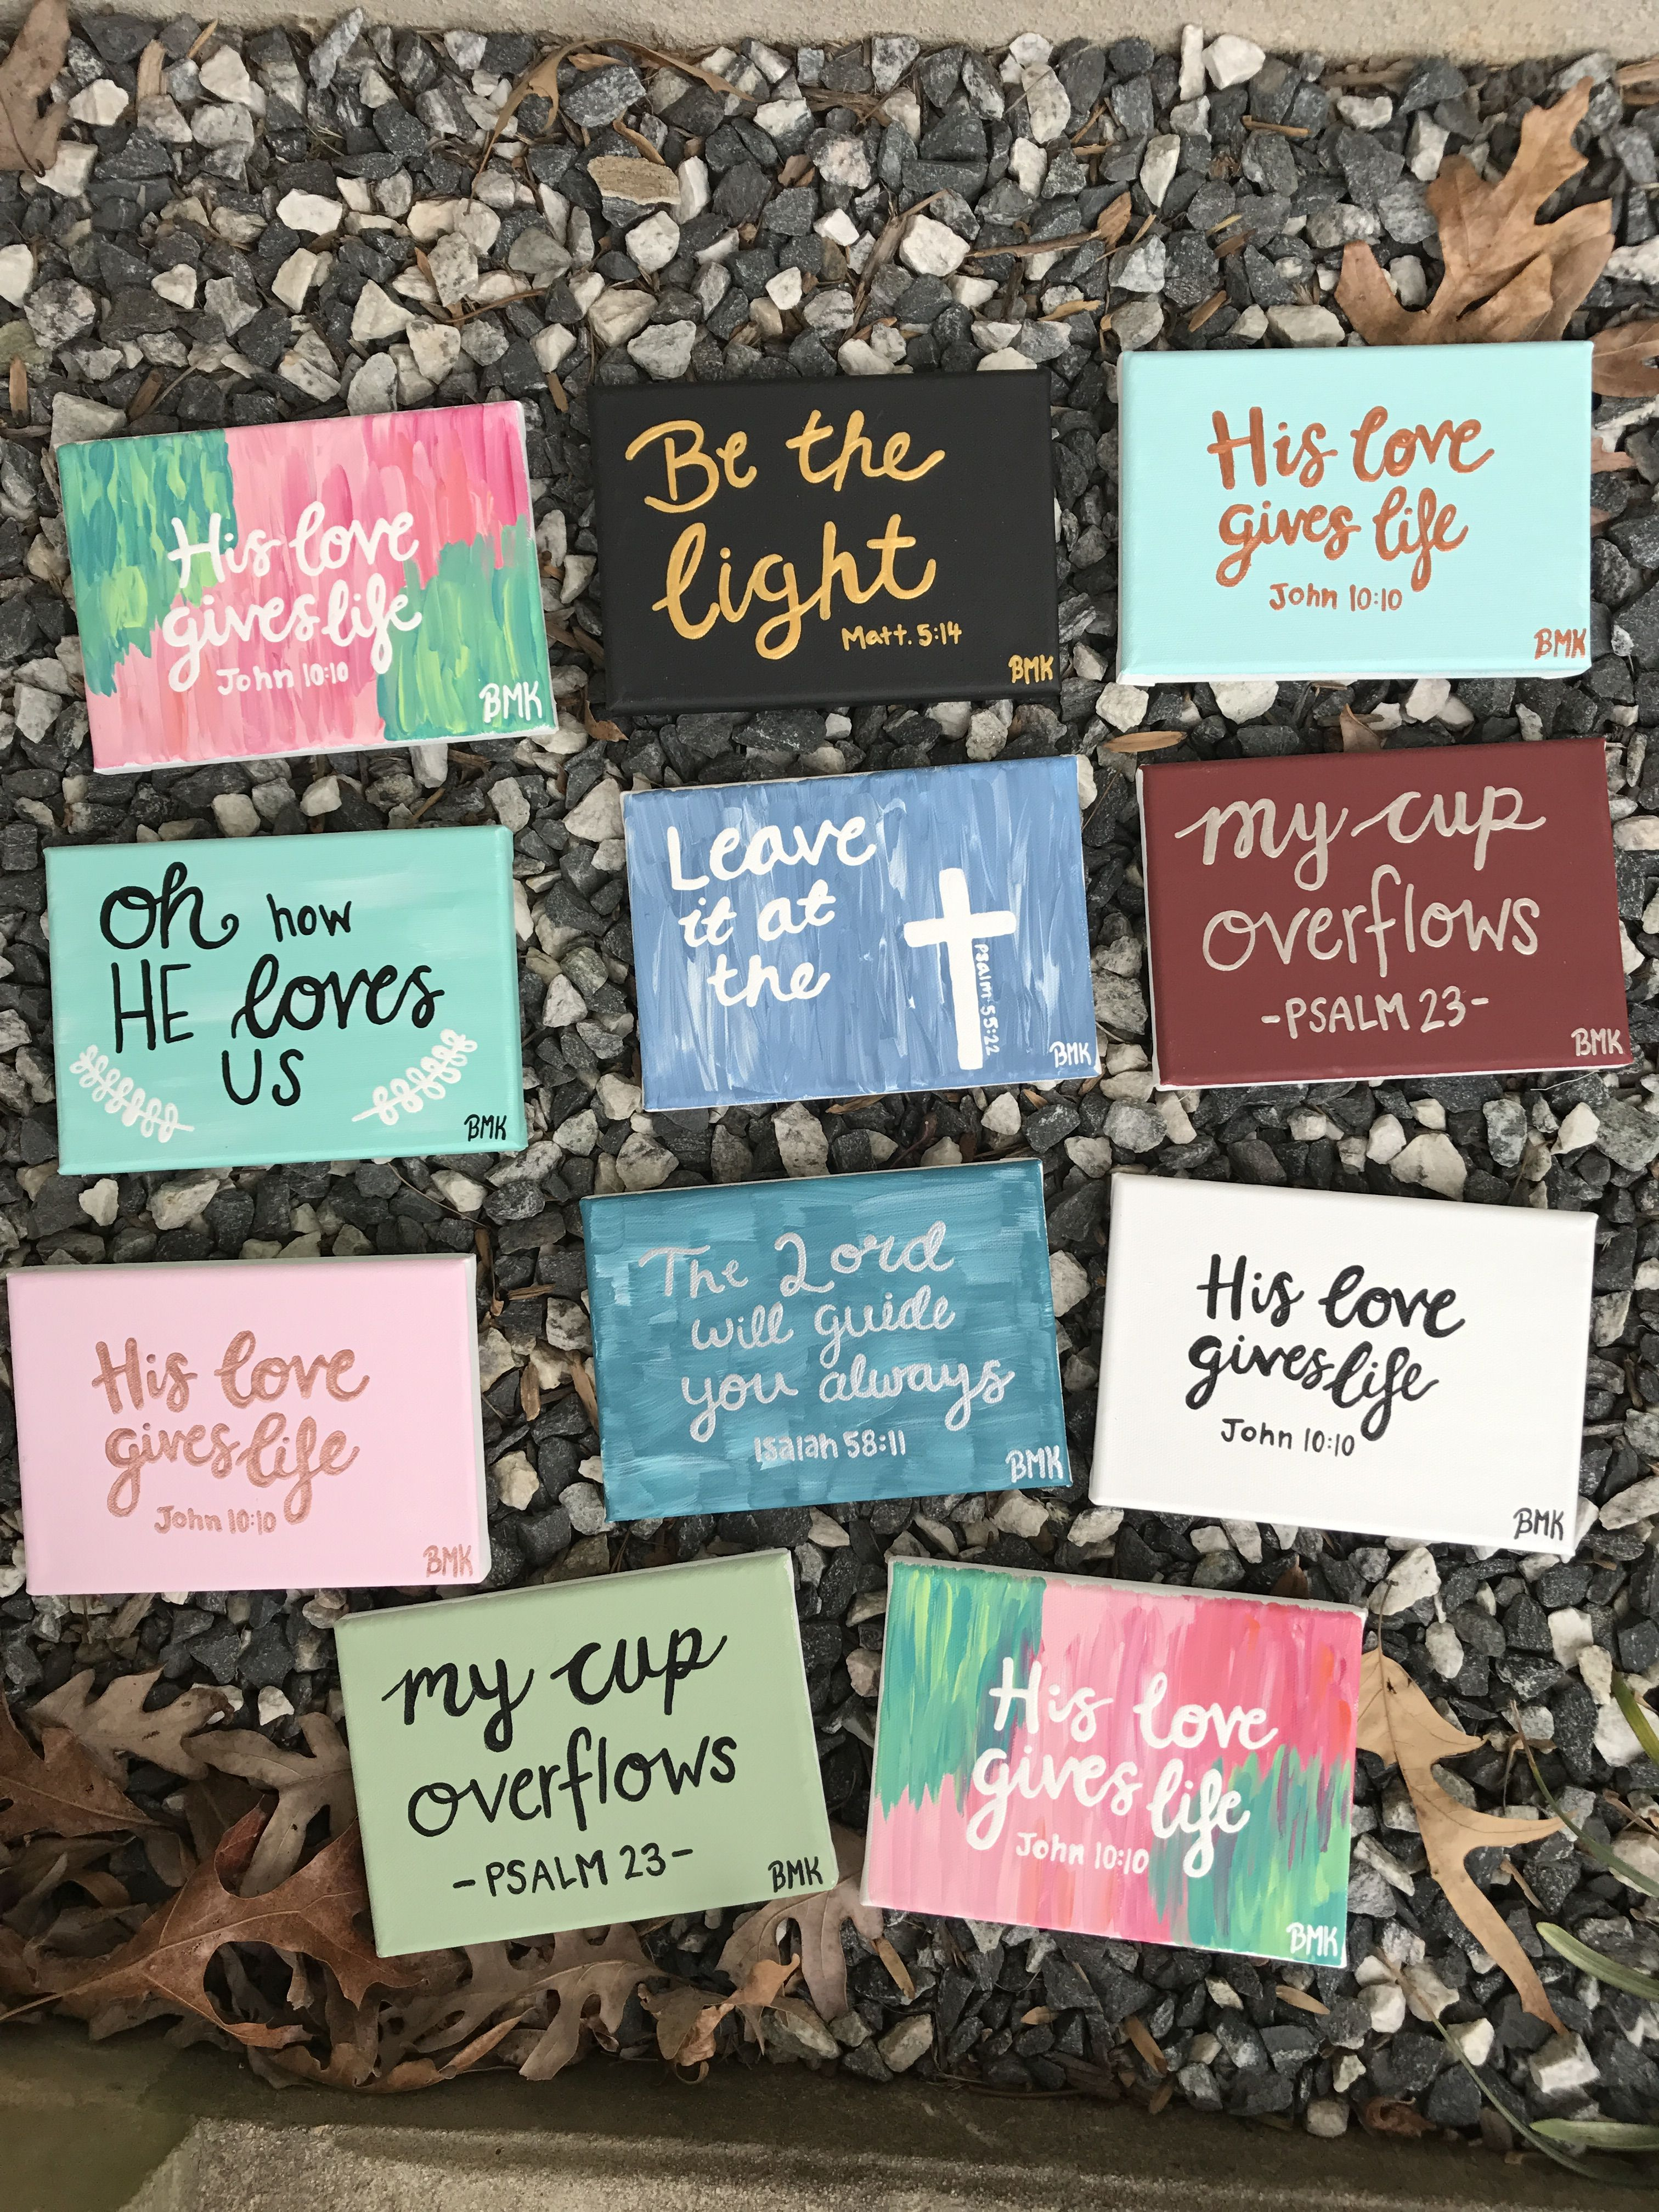 Little Mini Canvases For Christmas Presents Bible Verse Paintings His Love Gives Life John 10 10 Canvas Painting Diy Diy Canvas Art Bible Verse Painting